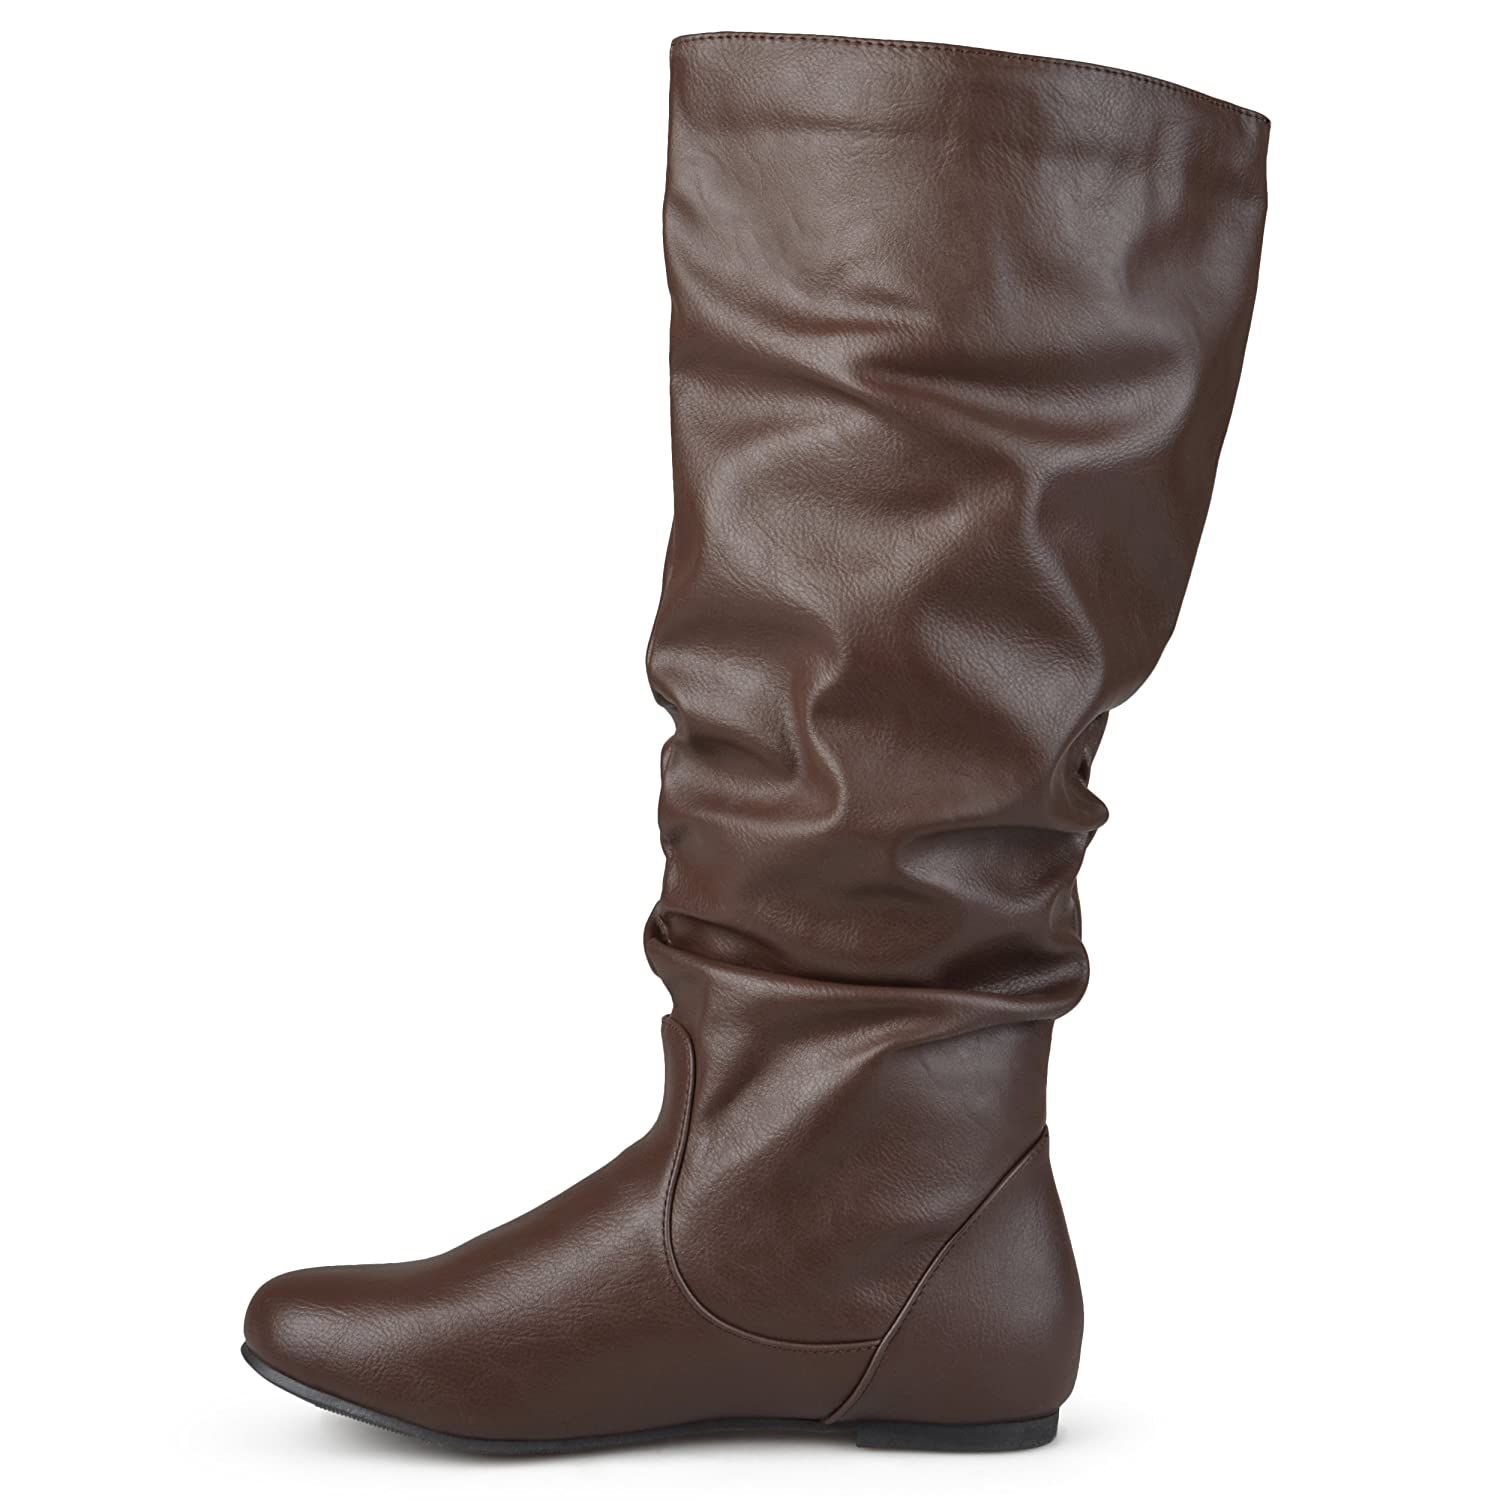 ab14870459f8b Botas de montar Slouch para mujer de tamaño regular y pantorrilla media de  Journee Collection Patente Brown